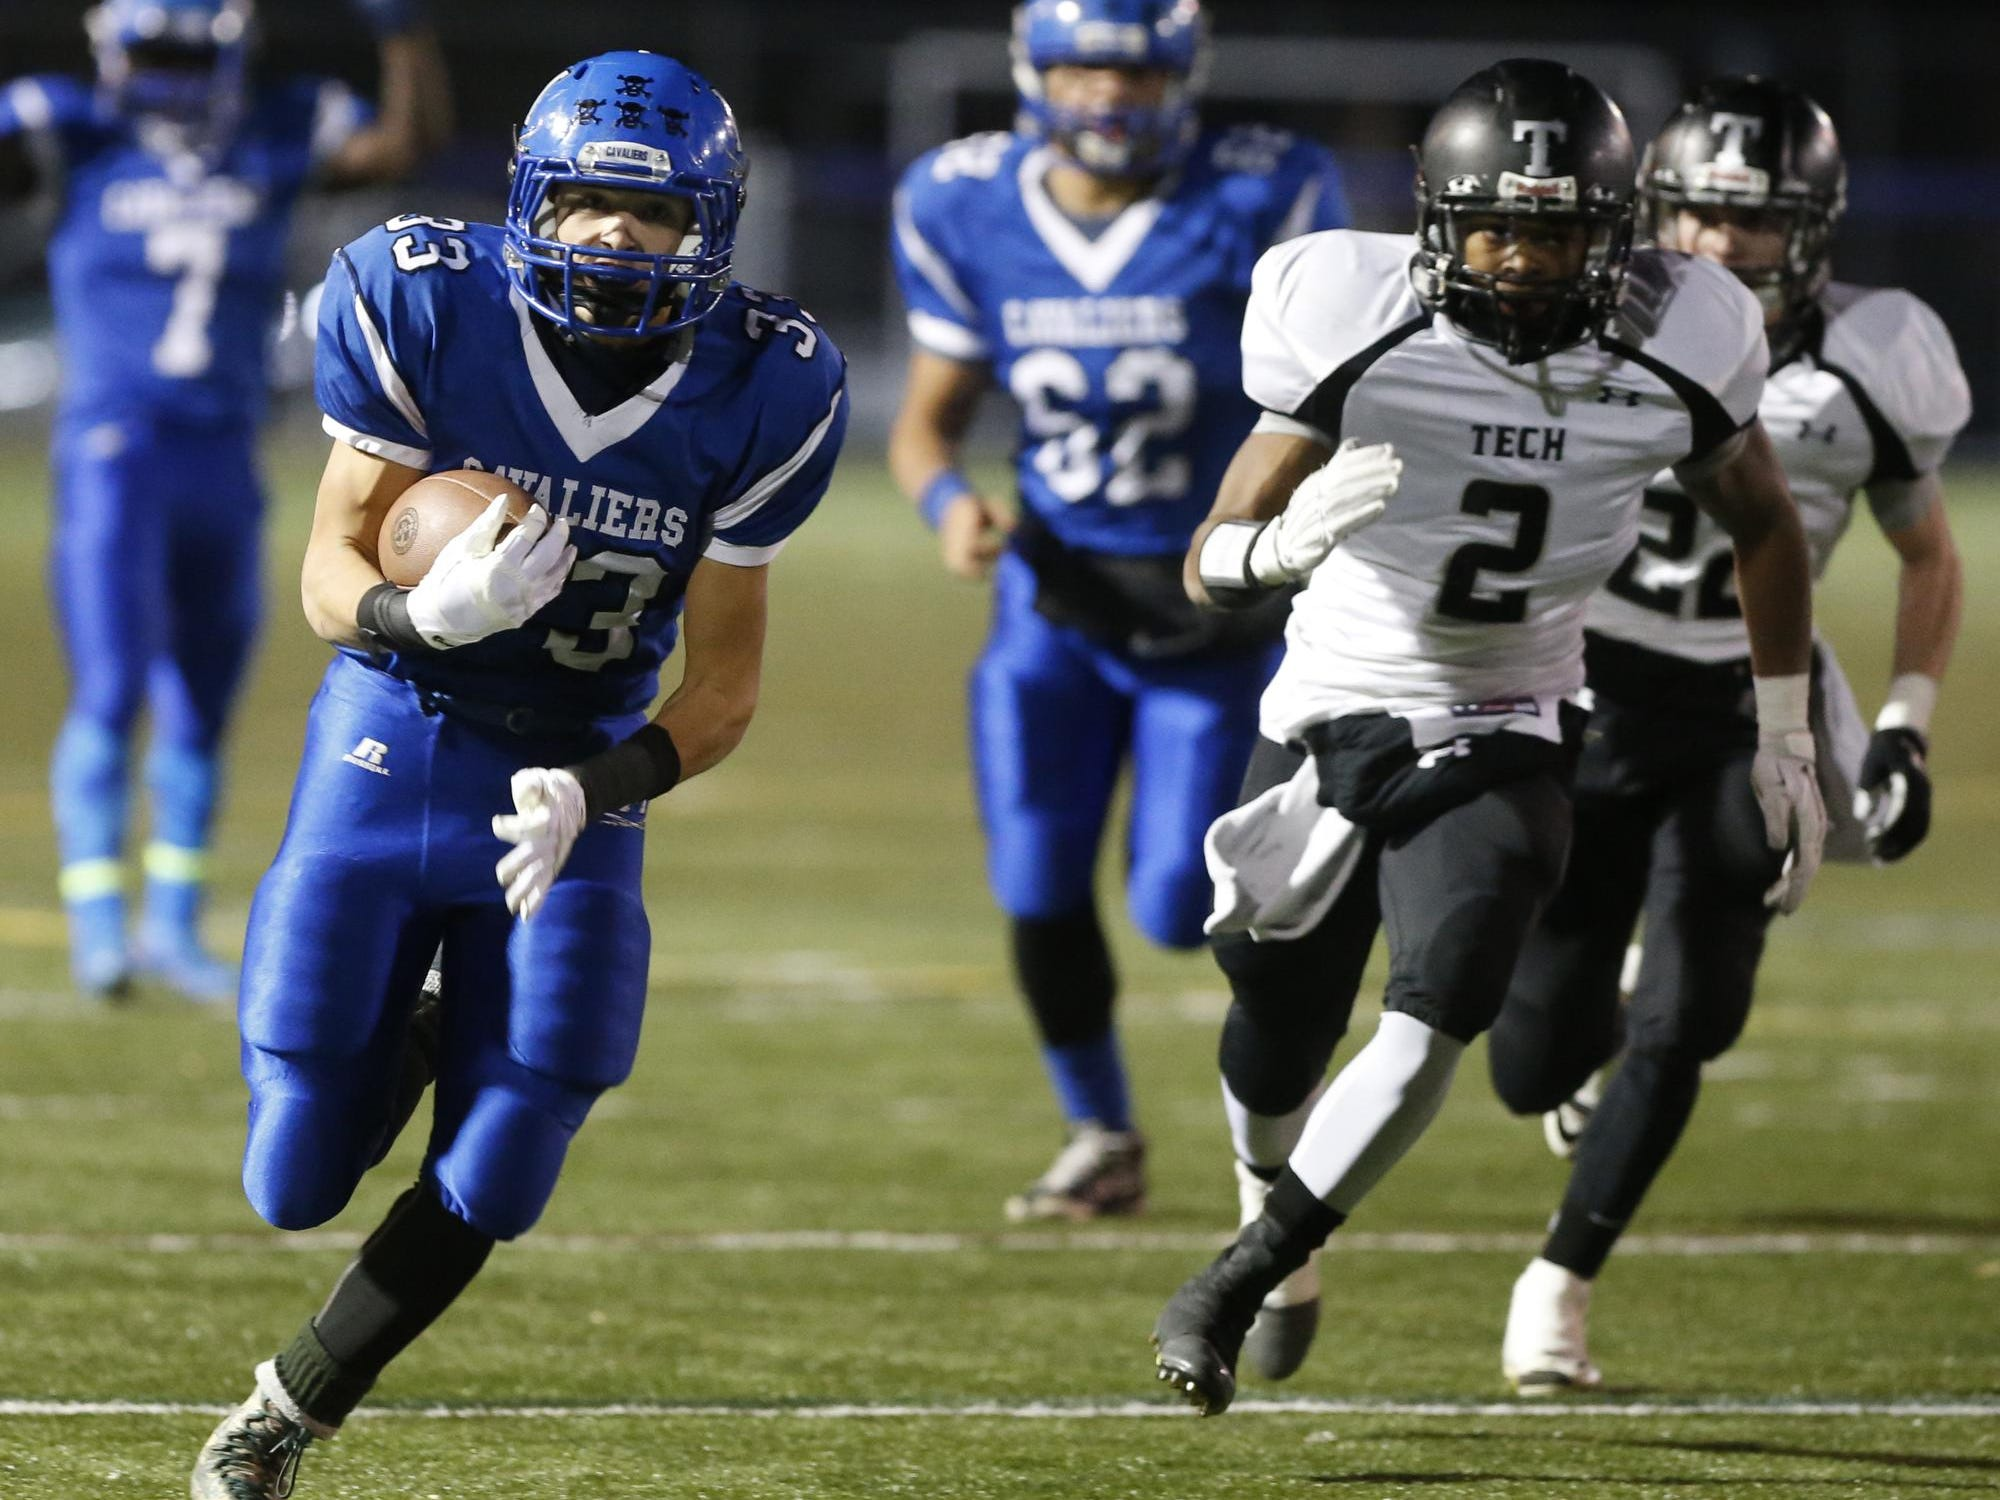 Frank Datillo and Middletown are hoping for a return trip to the Division I Championship Game.